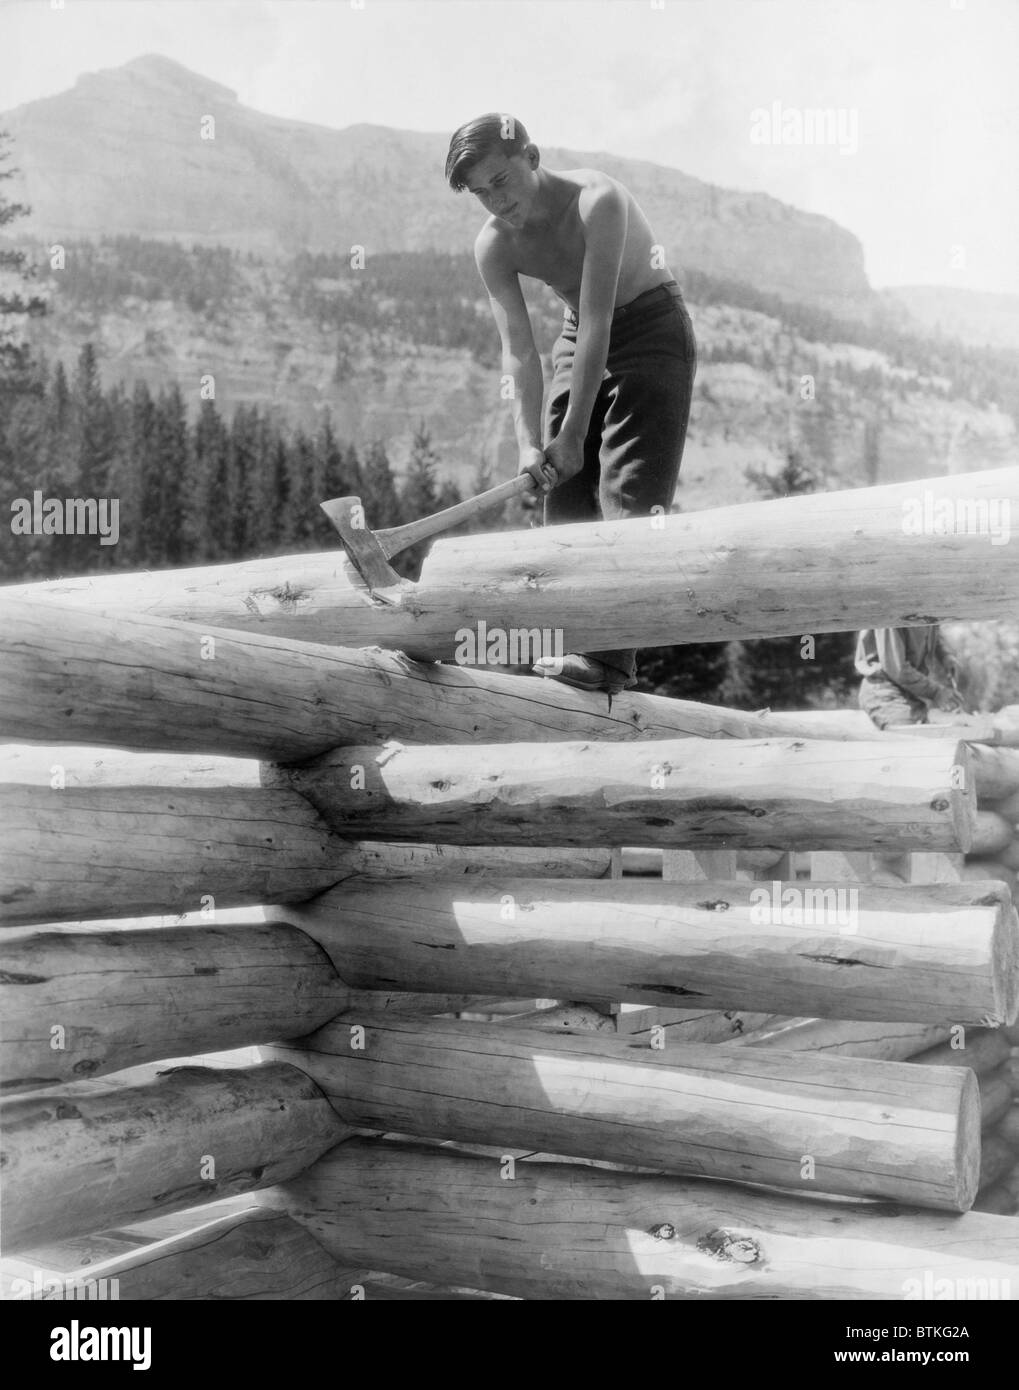 Civilian Conservation Corp worker cutting a coped joint on log cabin at Granite Creek, Teton National Forest, Wyoming - Stock Image